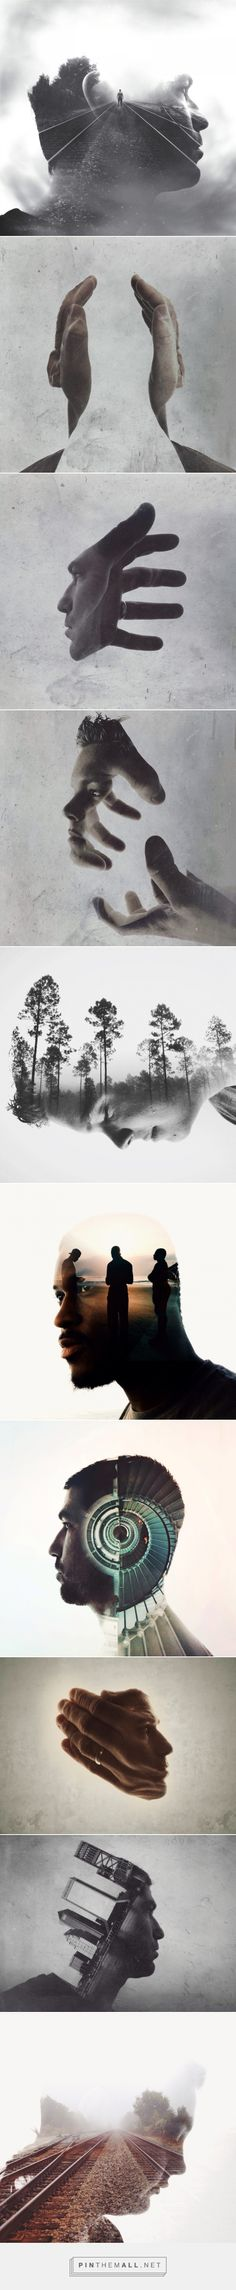 Double Exposure Portraits by Brandon Kidwell | Inspiration Grid | Design Inspiration - created via http://pinthemall.net